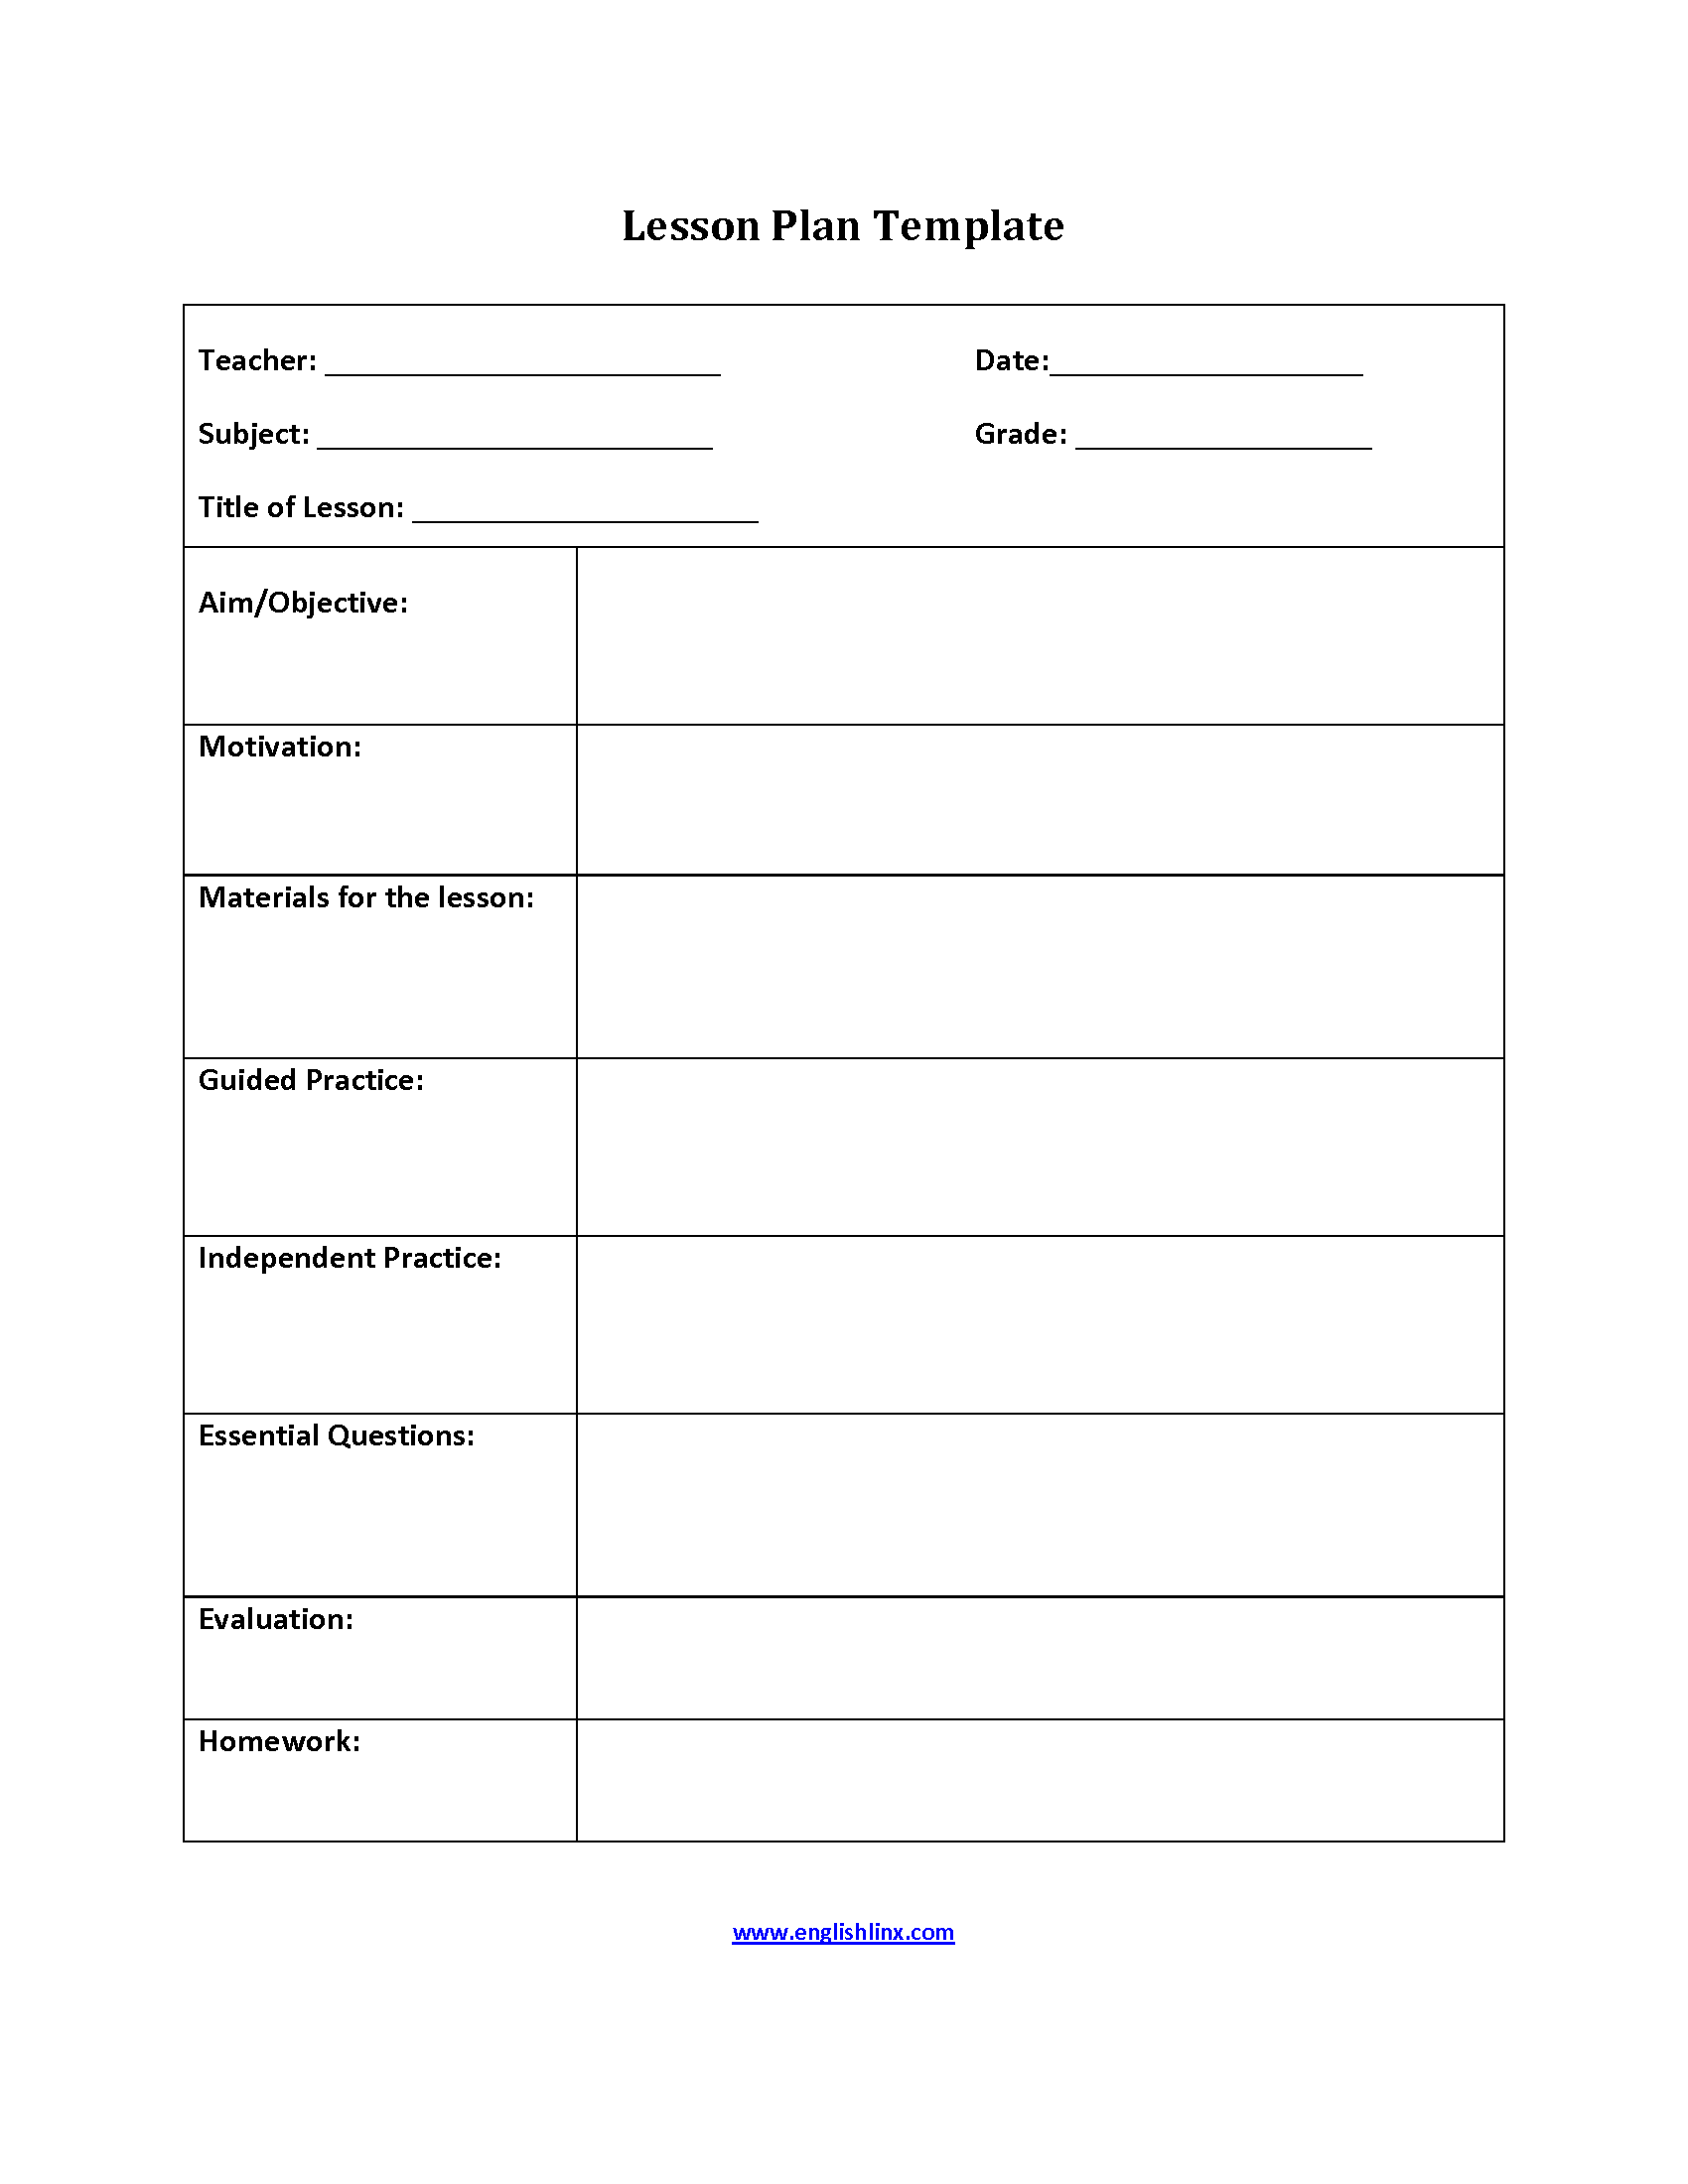 Englishlinxcom Lesson Plan Template - Literacy lesson plan template